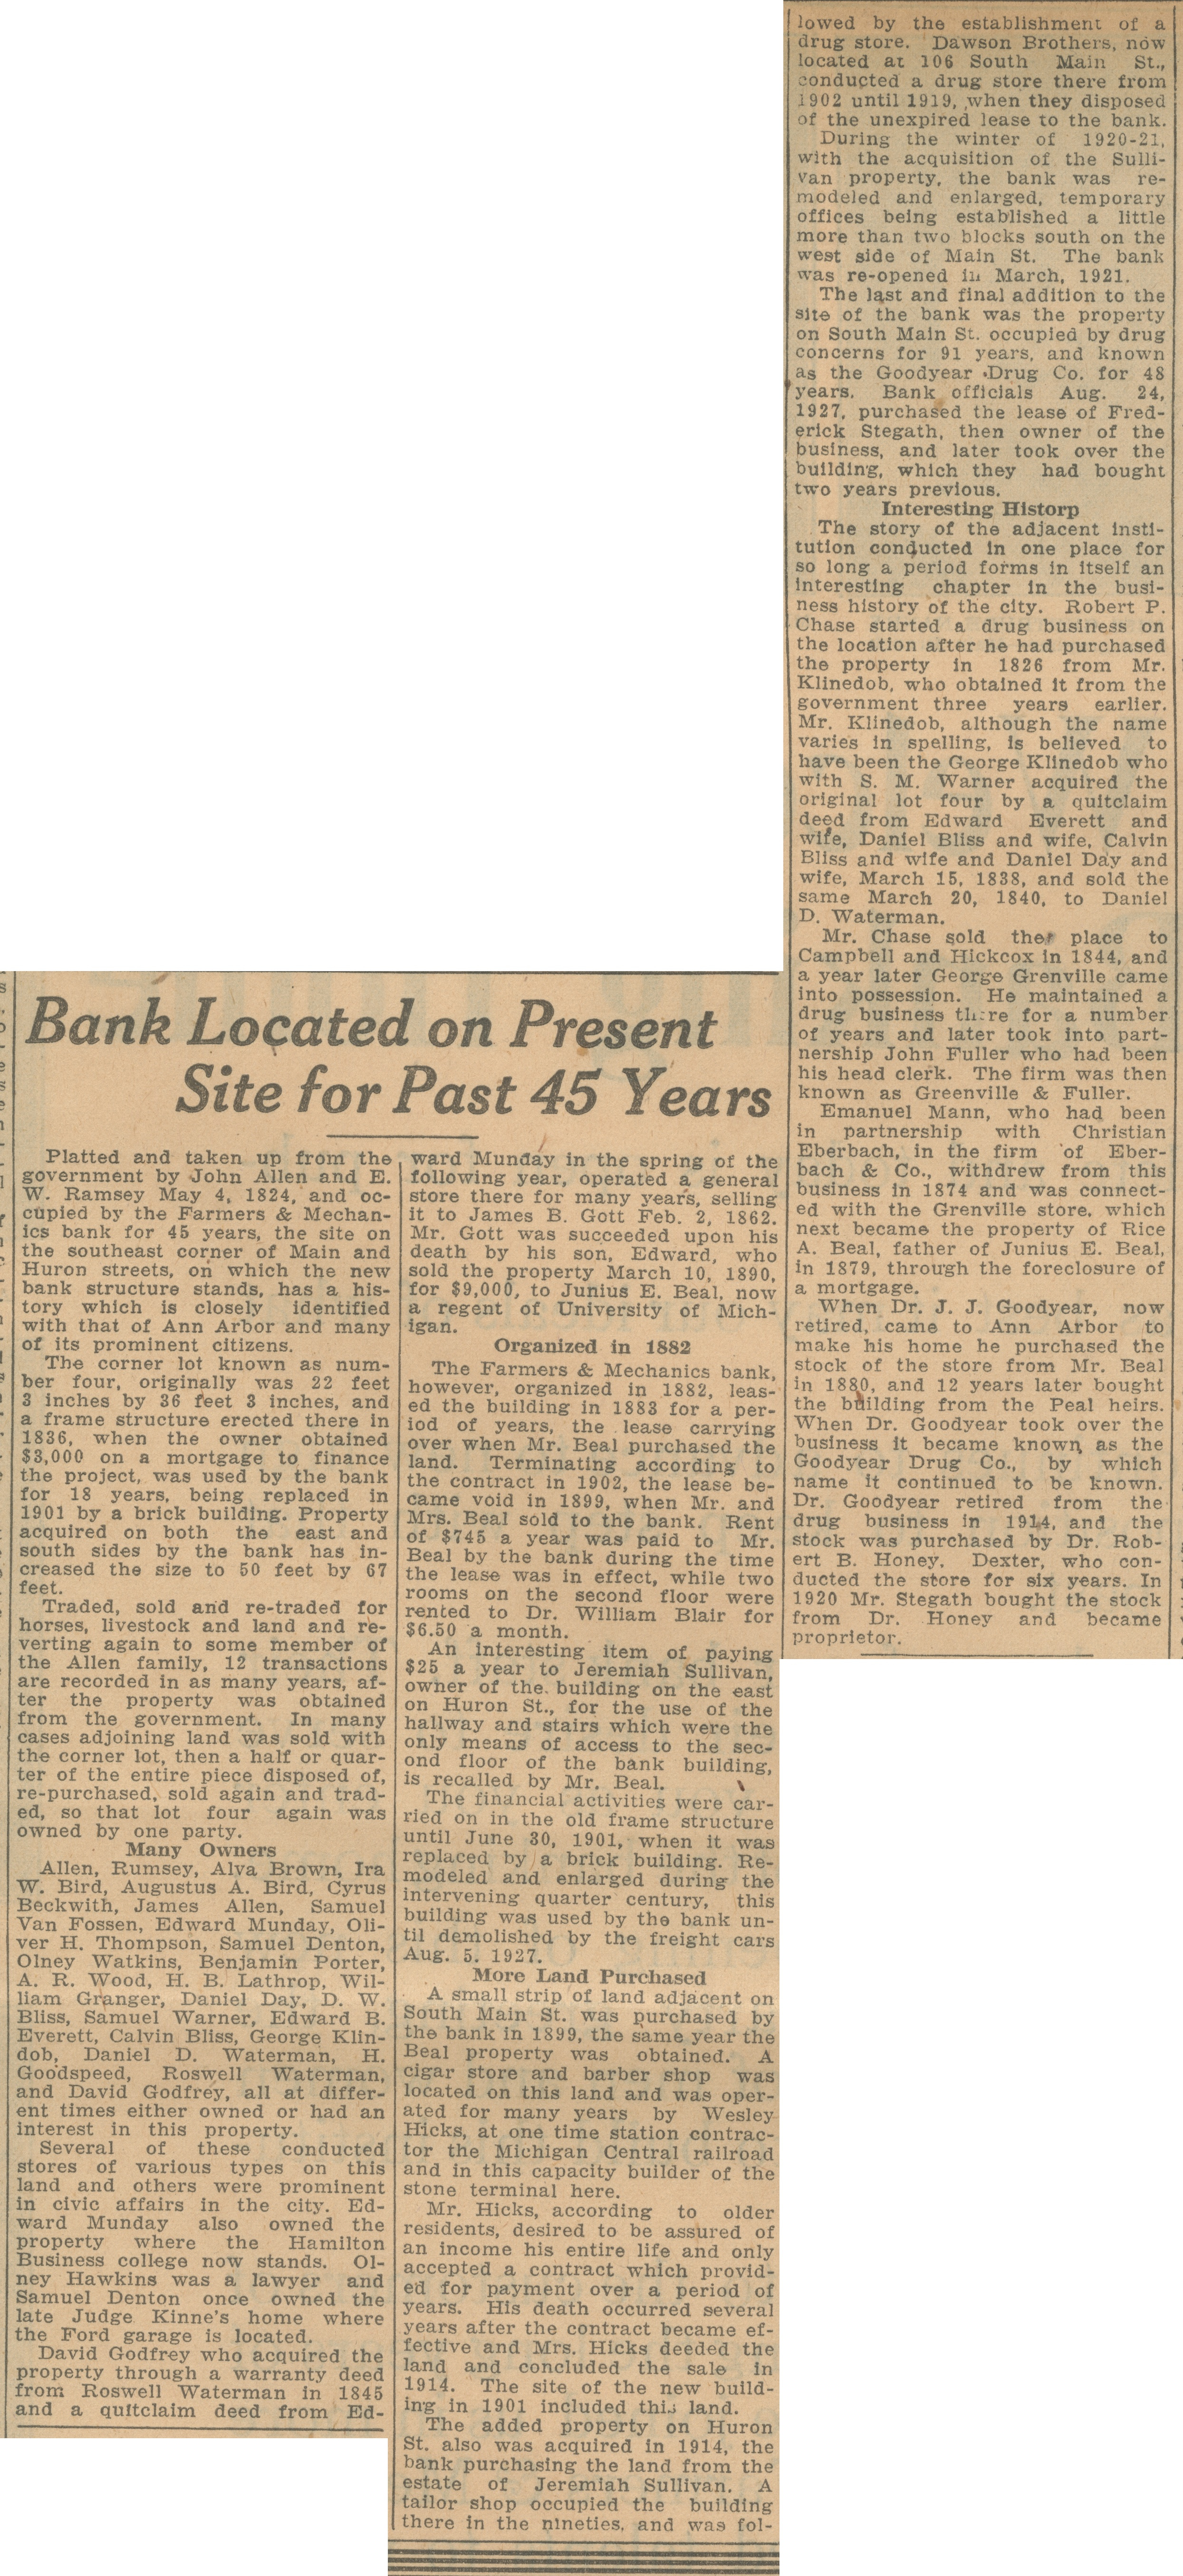 Bank Located On Present Site For Past 45 Years image